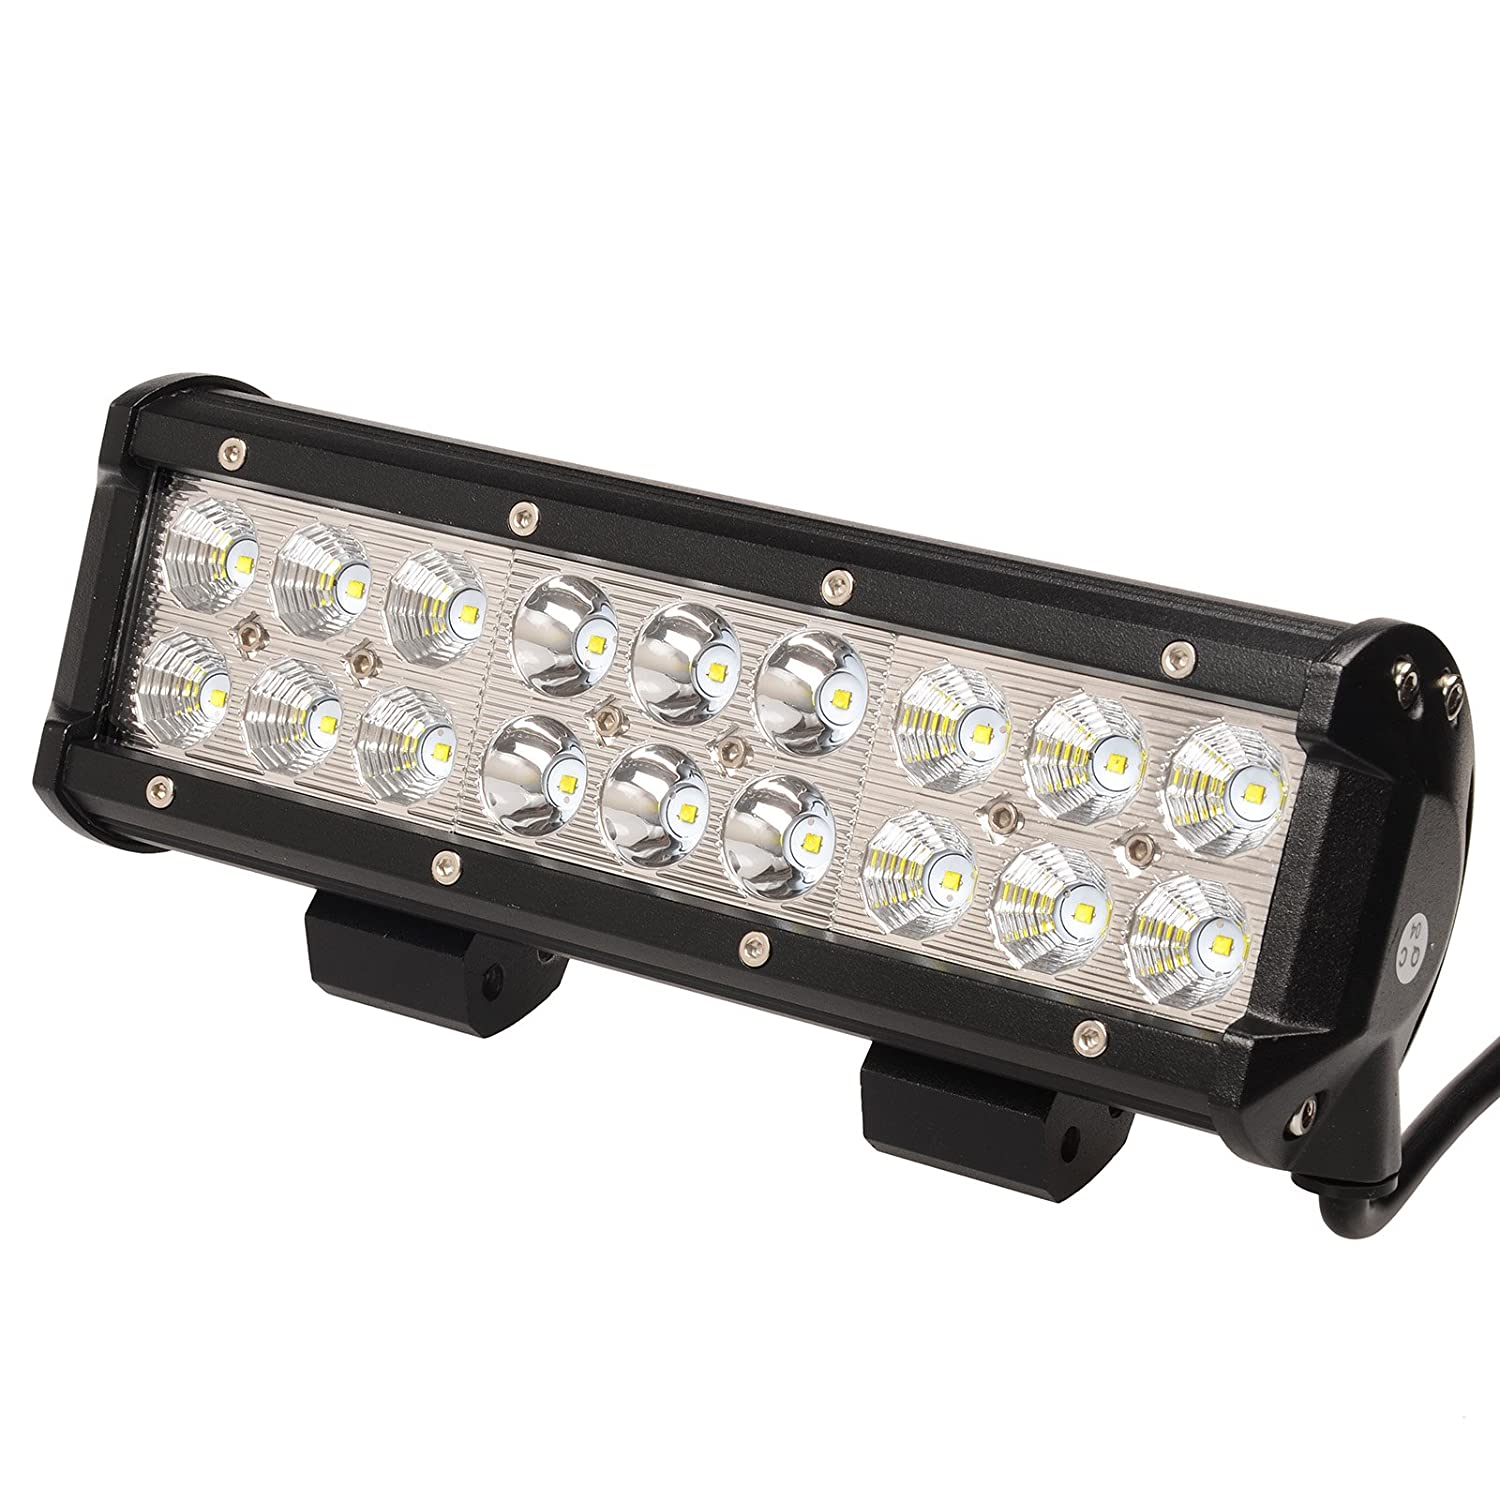 81xUiCulL0L._SL1500_ amazon com kawell led light bar 9 inch 54w 6000k spot flood combo  at pacquiaovsvargaslive.co